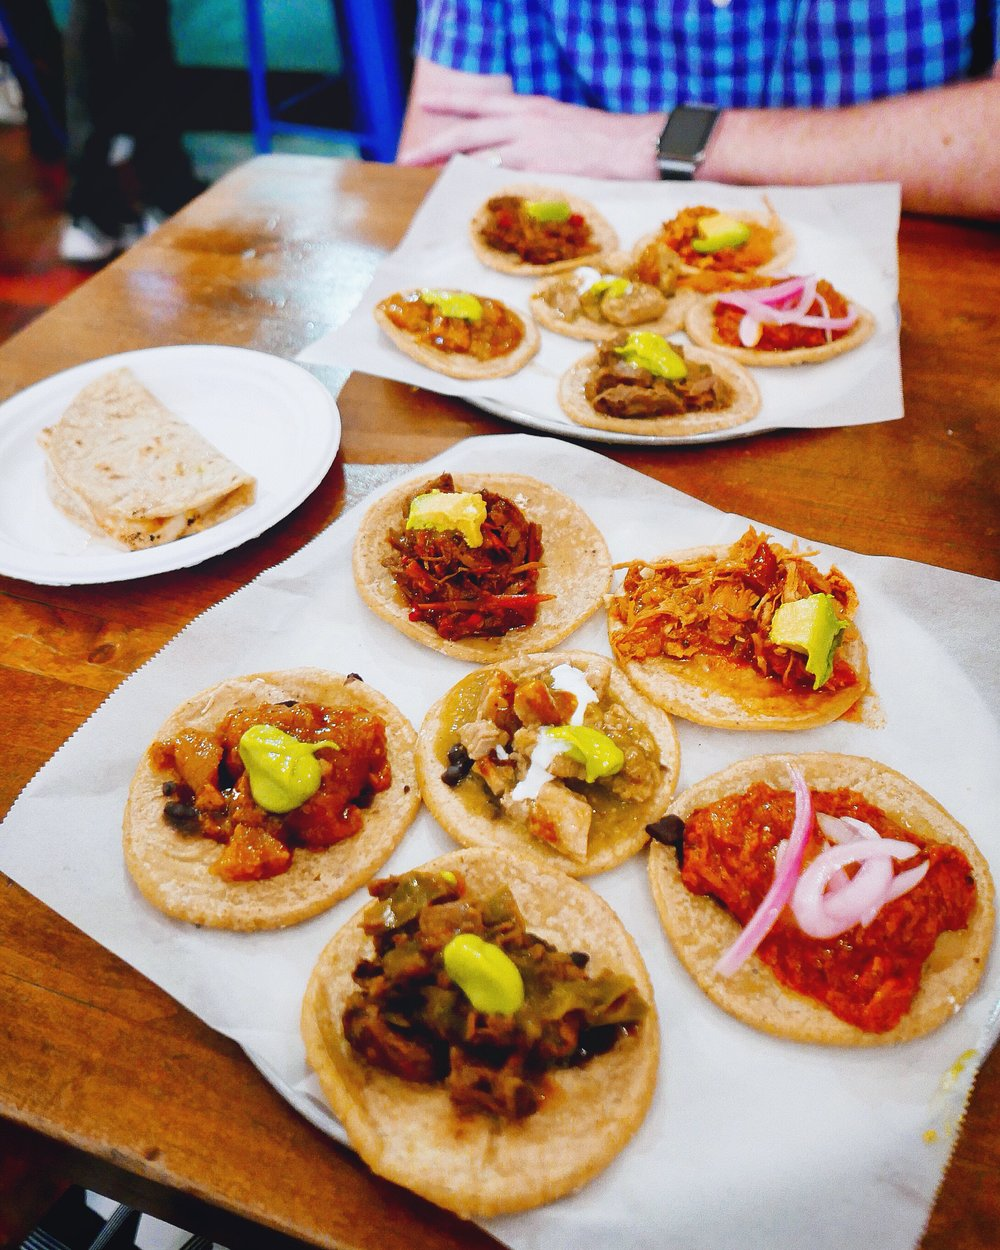 Simple, homestyle flavors at Guisados - At Guisados, it's all about